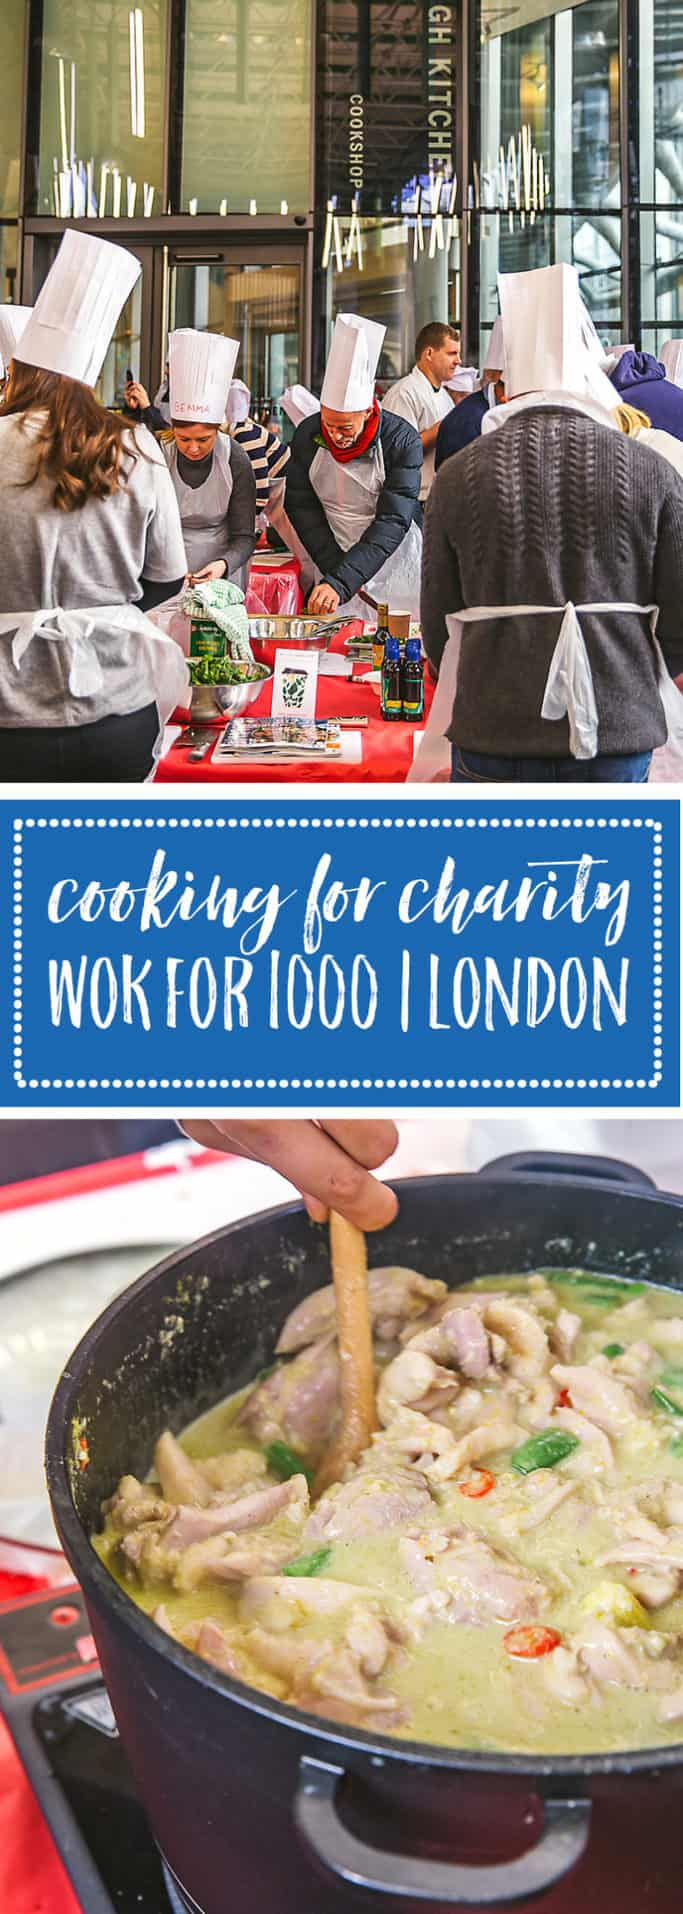 School of Wok, an Asian cooking school in London, brings together volunteers to make 1000 meals for the homeless in one day. Click here to learn more!